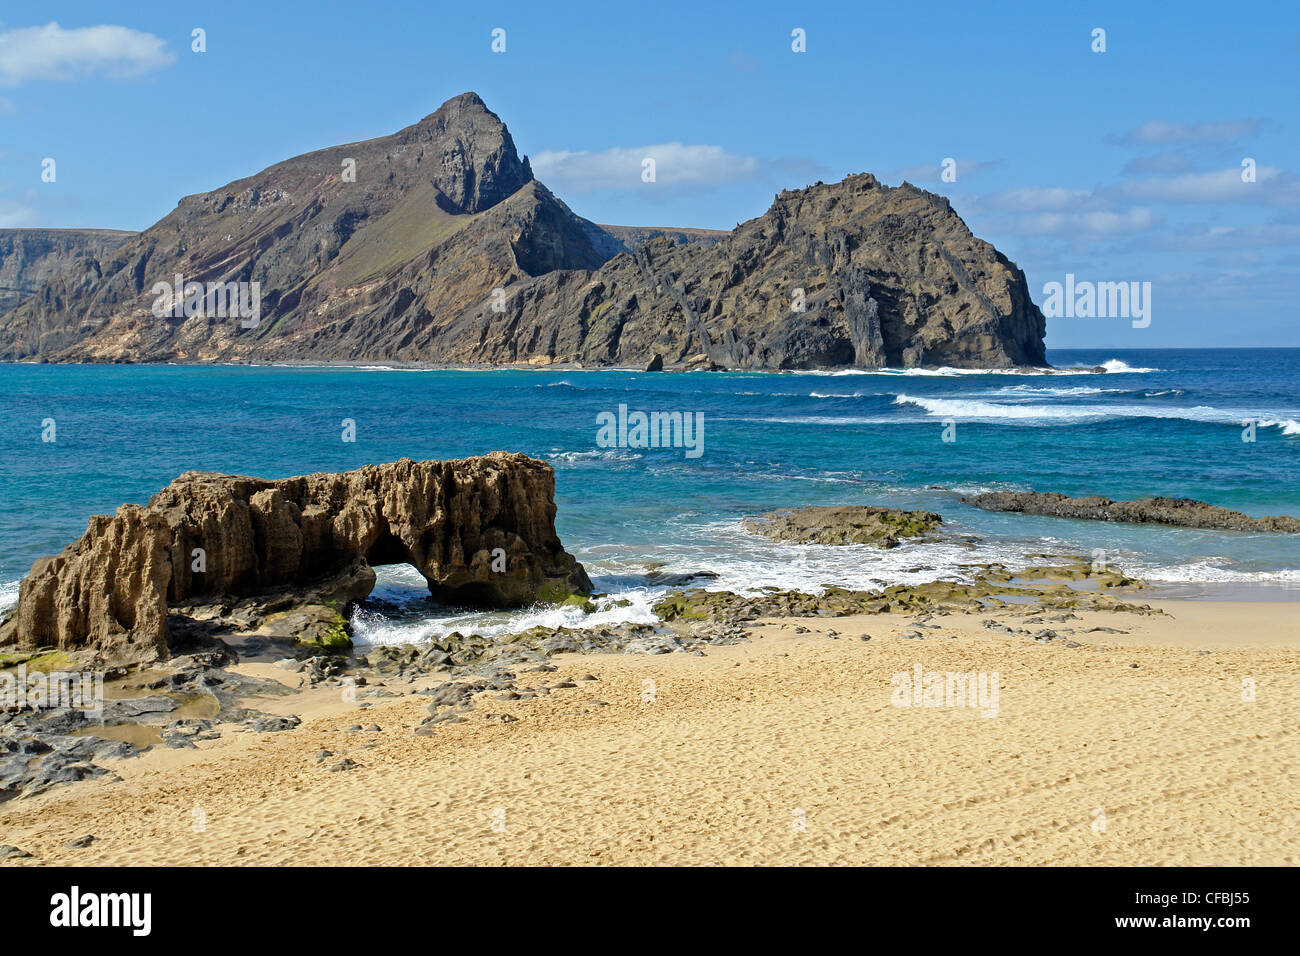 Europe, Portugal, Porto Santo, Ponta da Calheta, Ilheu de Baixo, Ilheu da cal, waves, cliff curves, mountains, rocks, - Stock Image